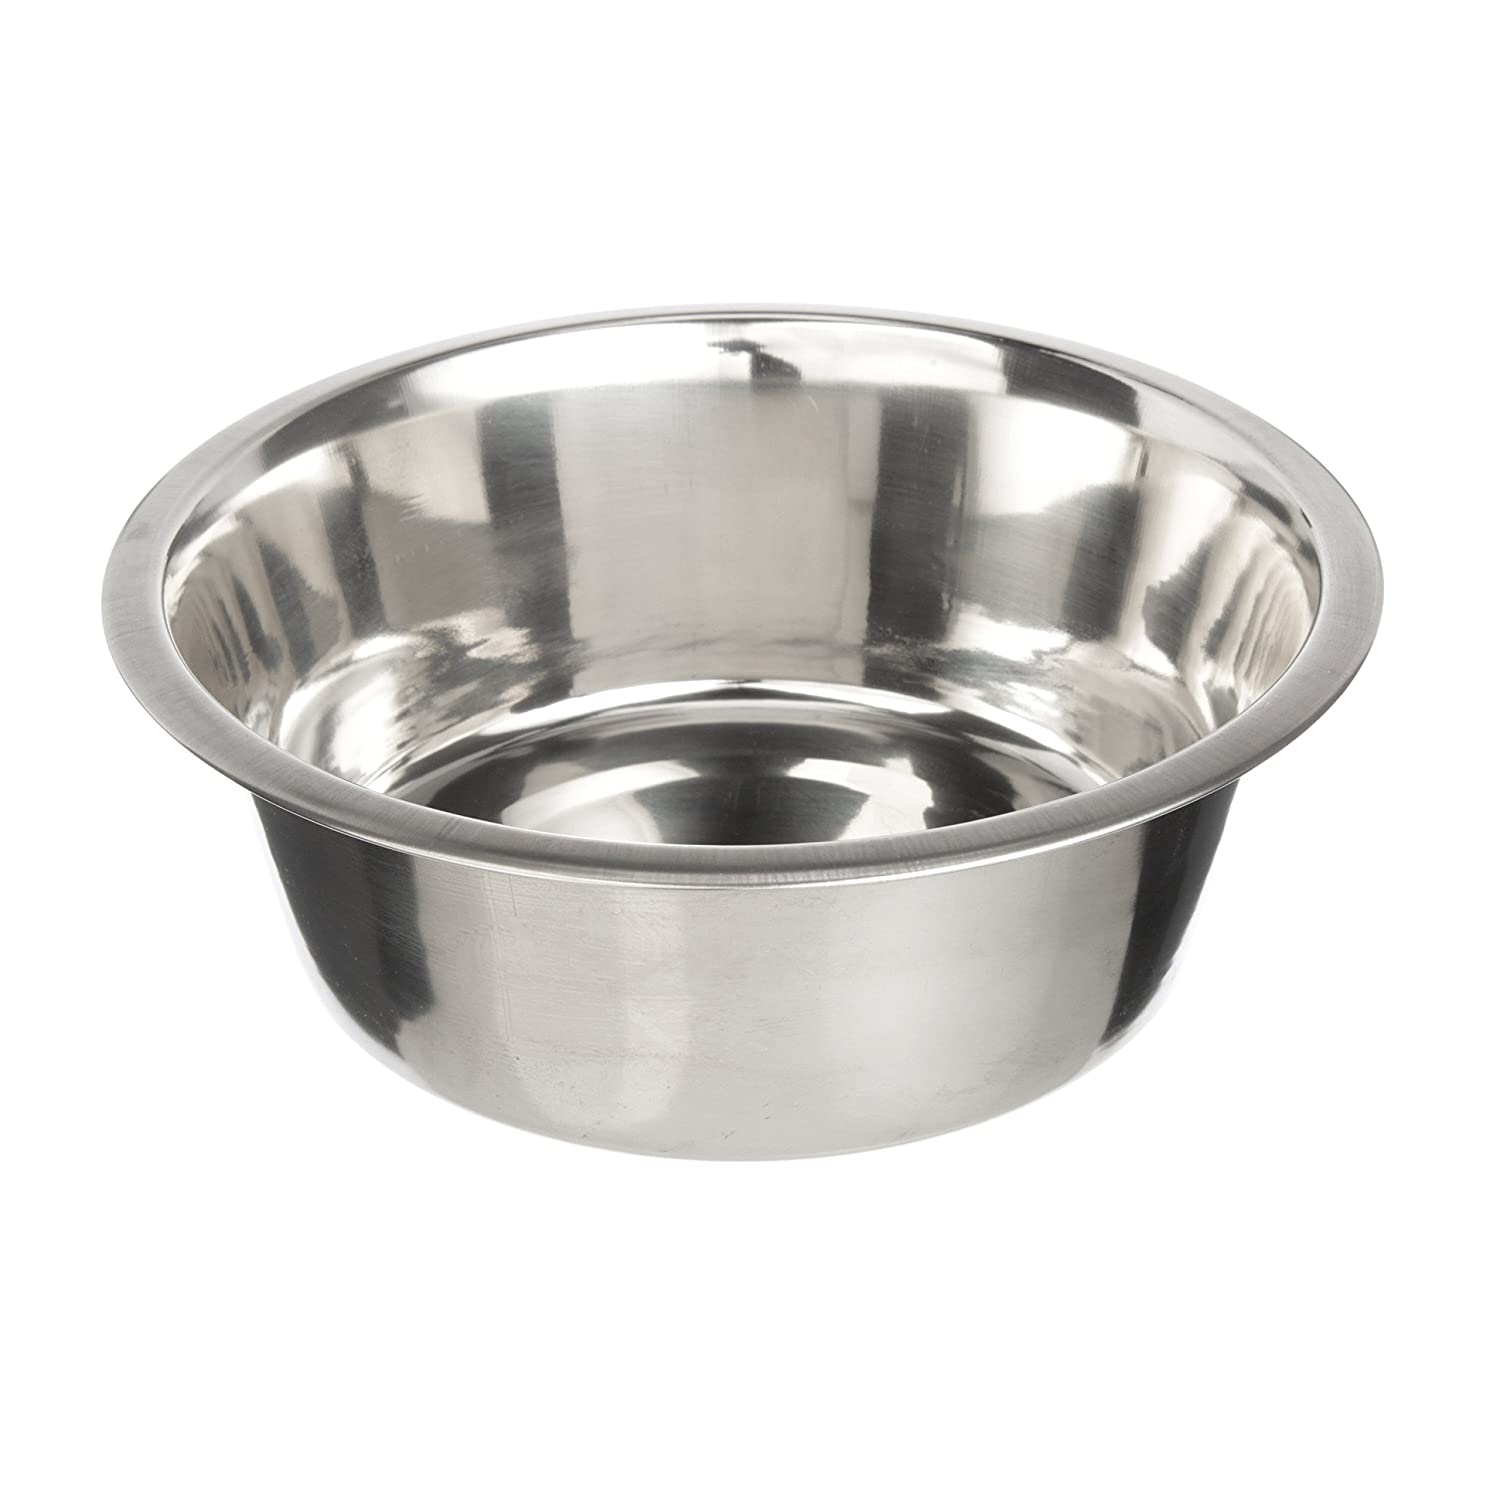 7 Cup NEATER PET BRANDS Stainless Steel Dog and Cat Bowls Neater Feeder Deluxe or Express Extra Replacement Bowl (Metal Food and Water Dish) (7 Cup)